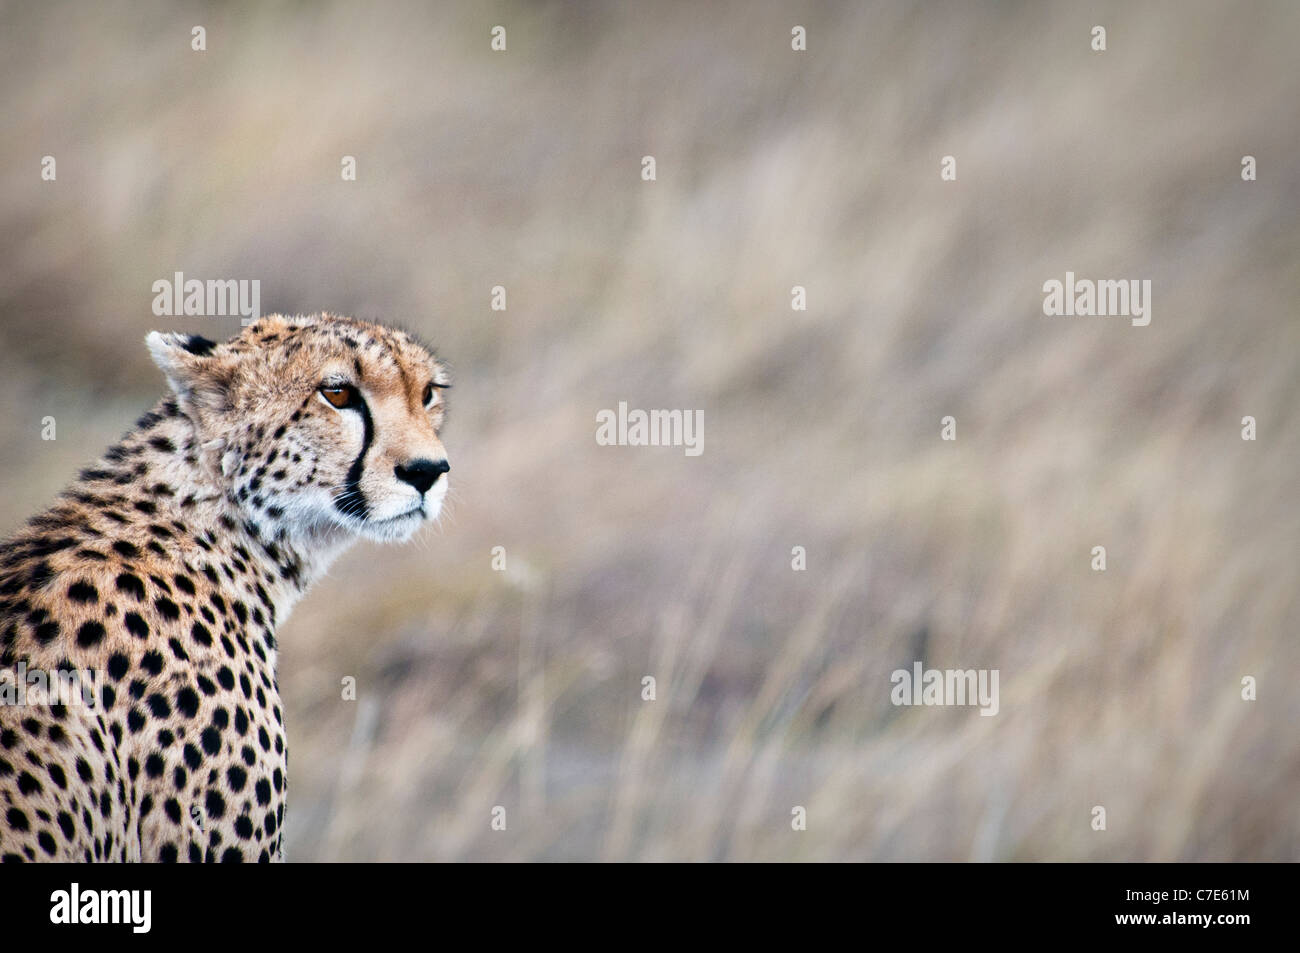 Cheetah, Acinonyx  jubatus, Looking for prey, Masai Mara National Reserve, Kenya, Africa Stock Photo